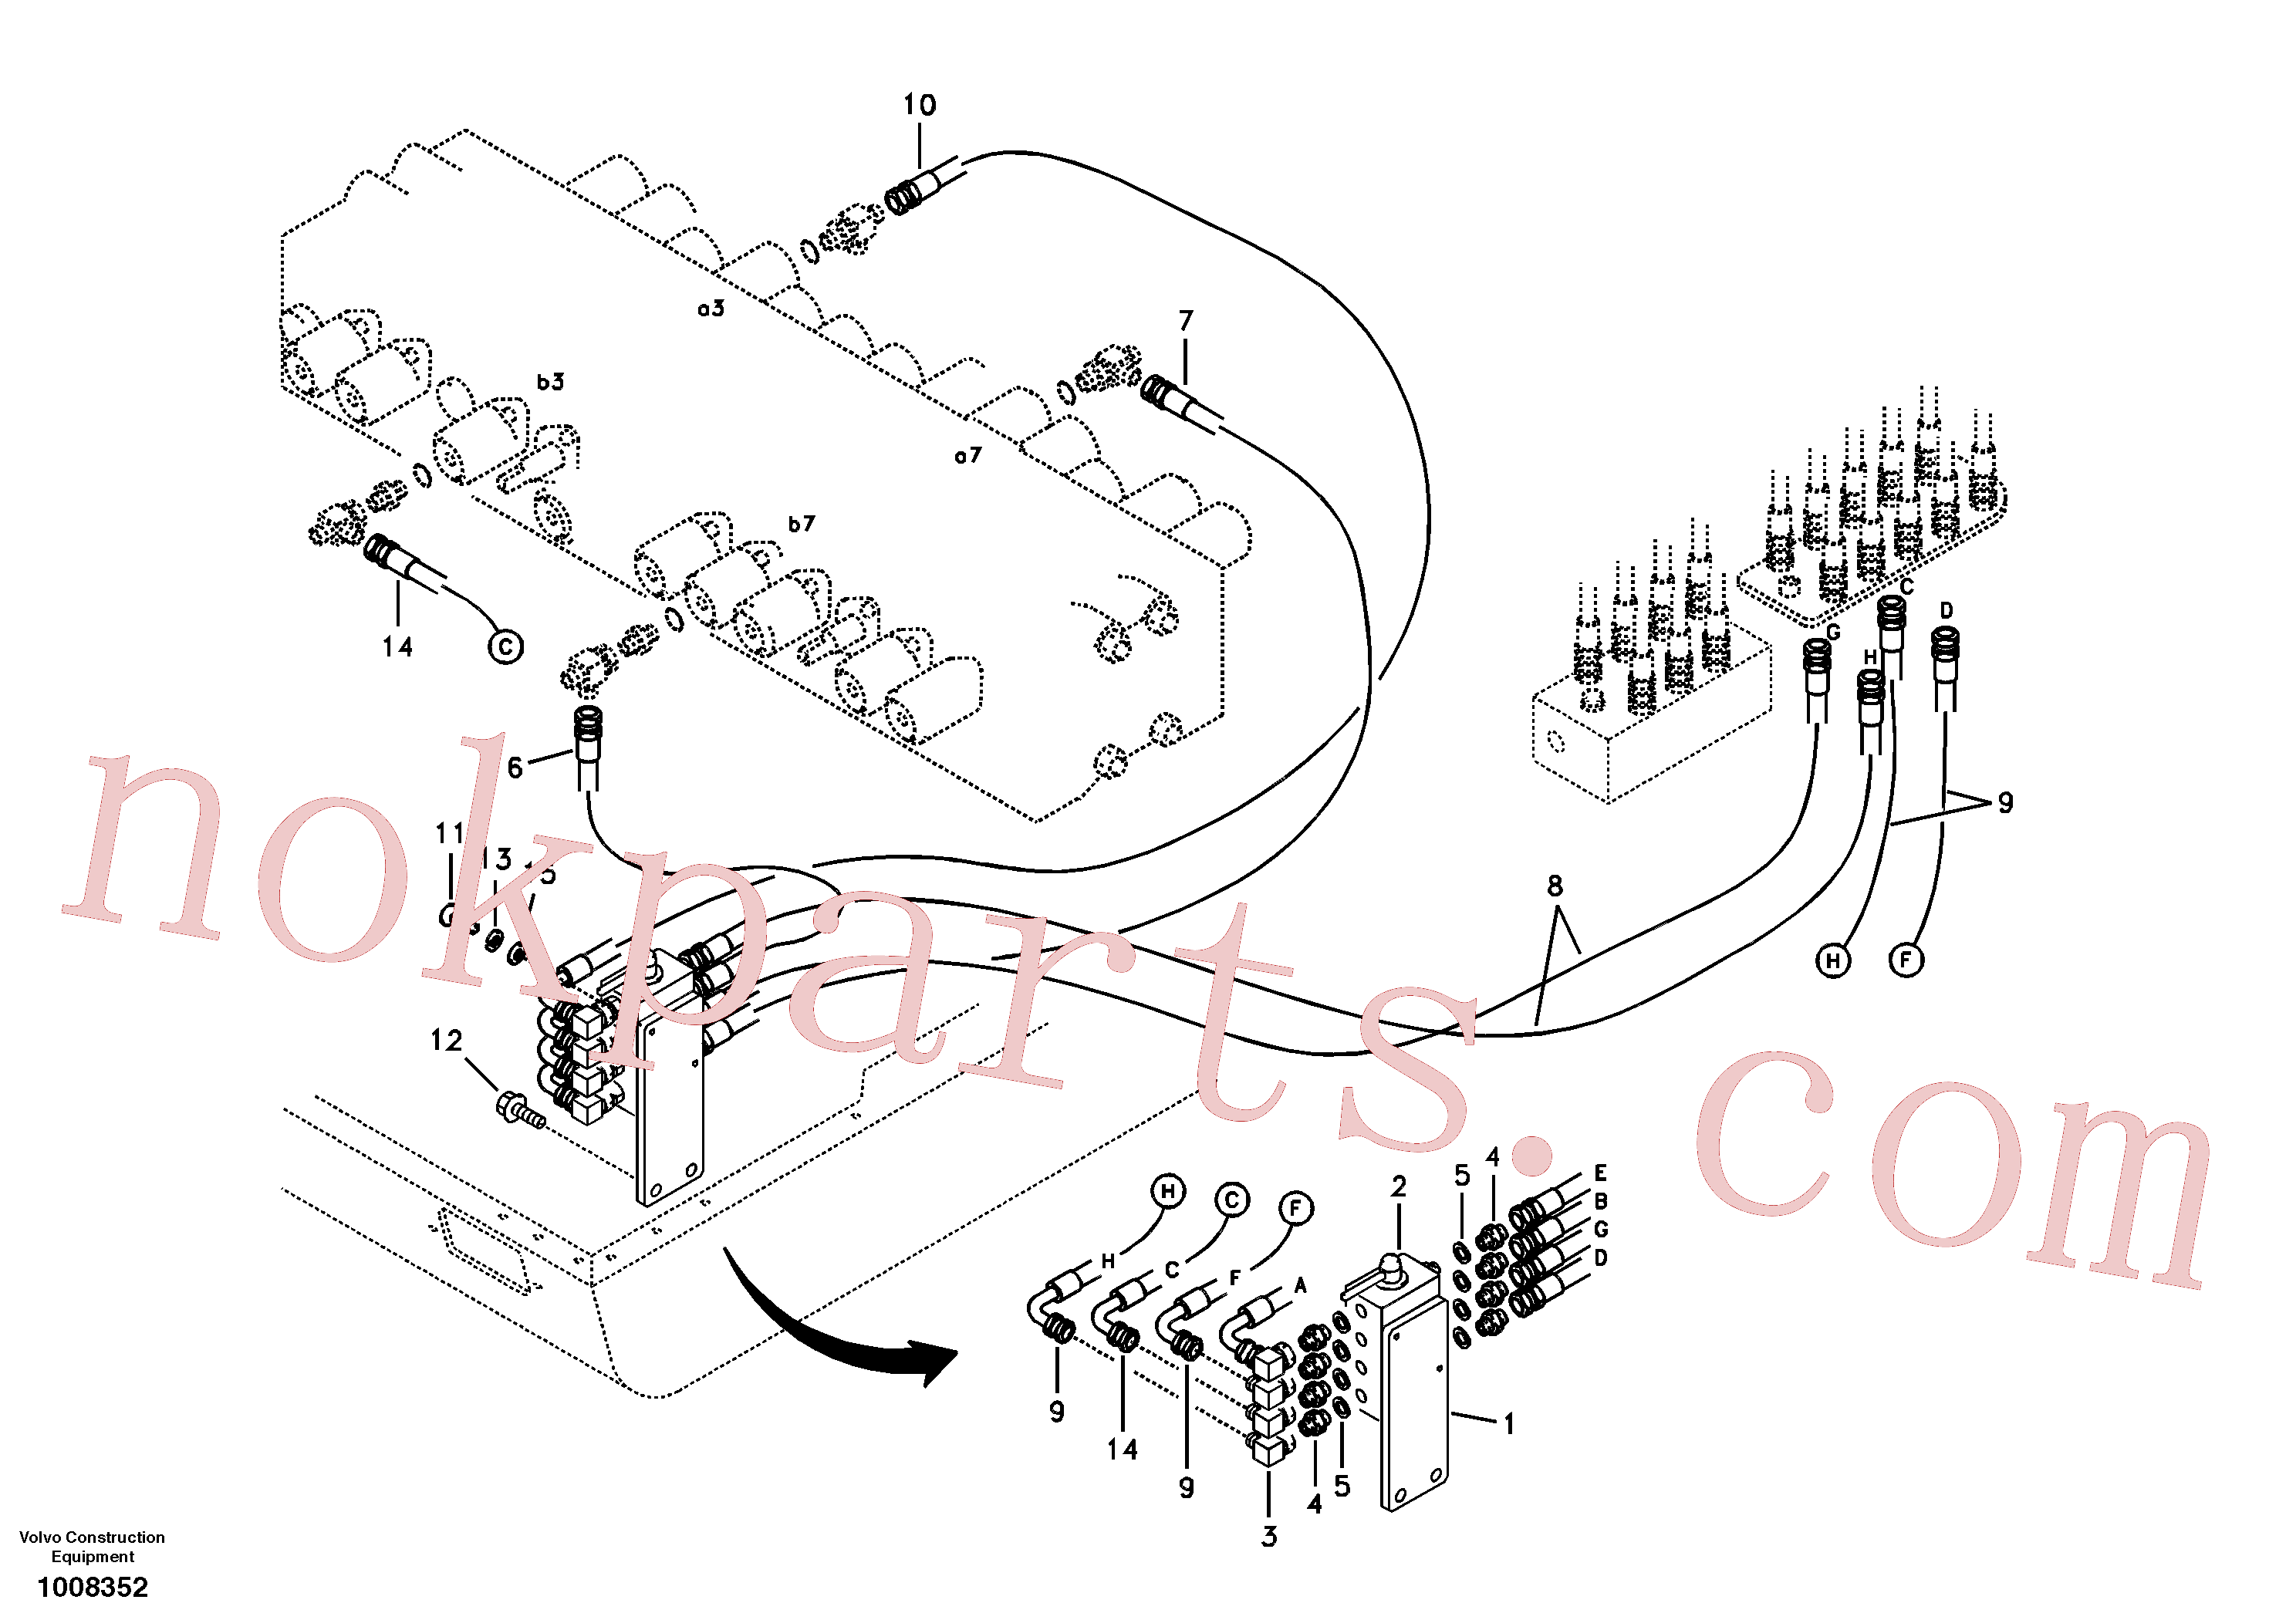 VOE11802737 for Volvo Servo system, changing lever function(1008352 assembly)